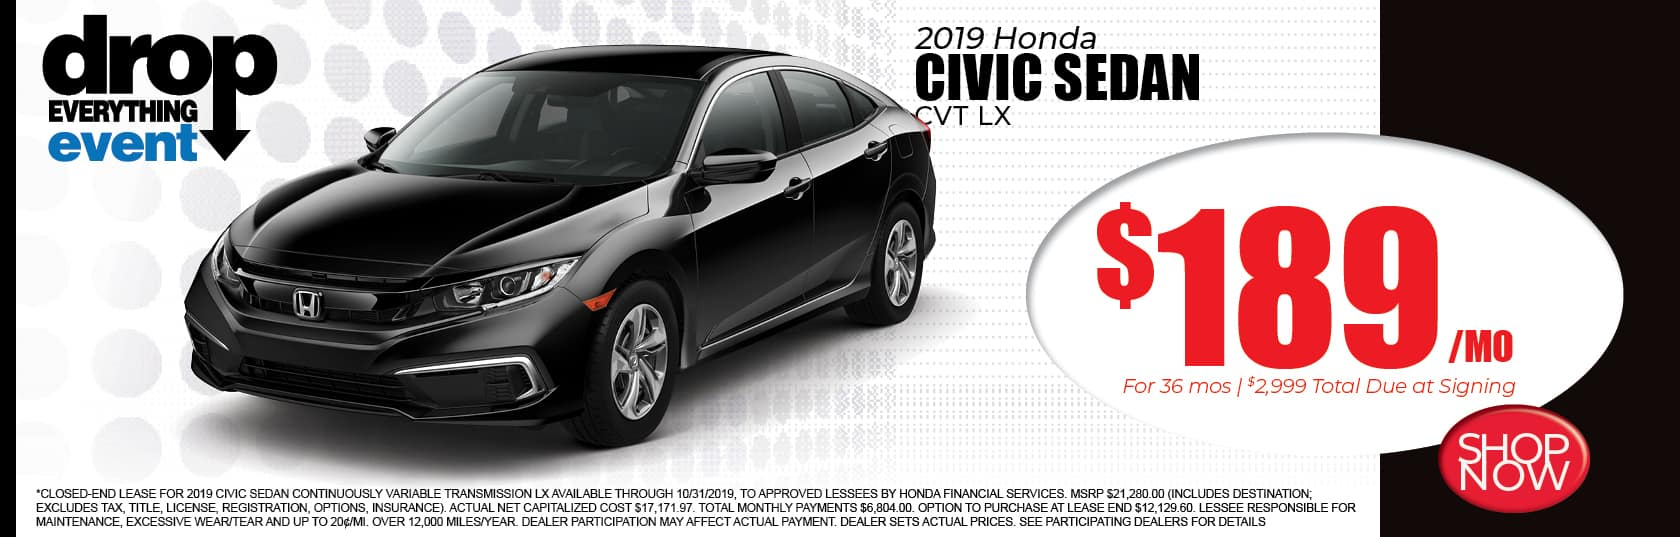 New Honda Civic Sedan for Sale in Midlothian, VA